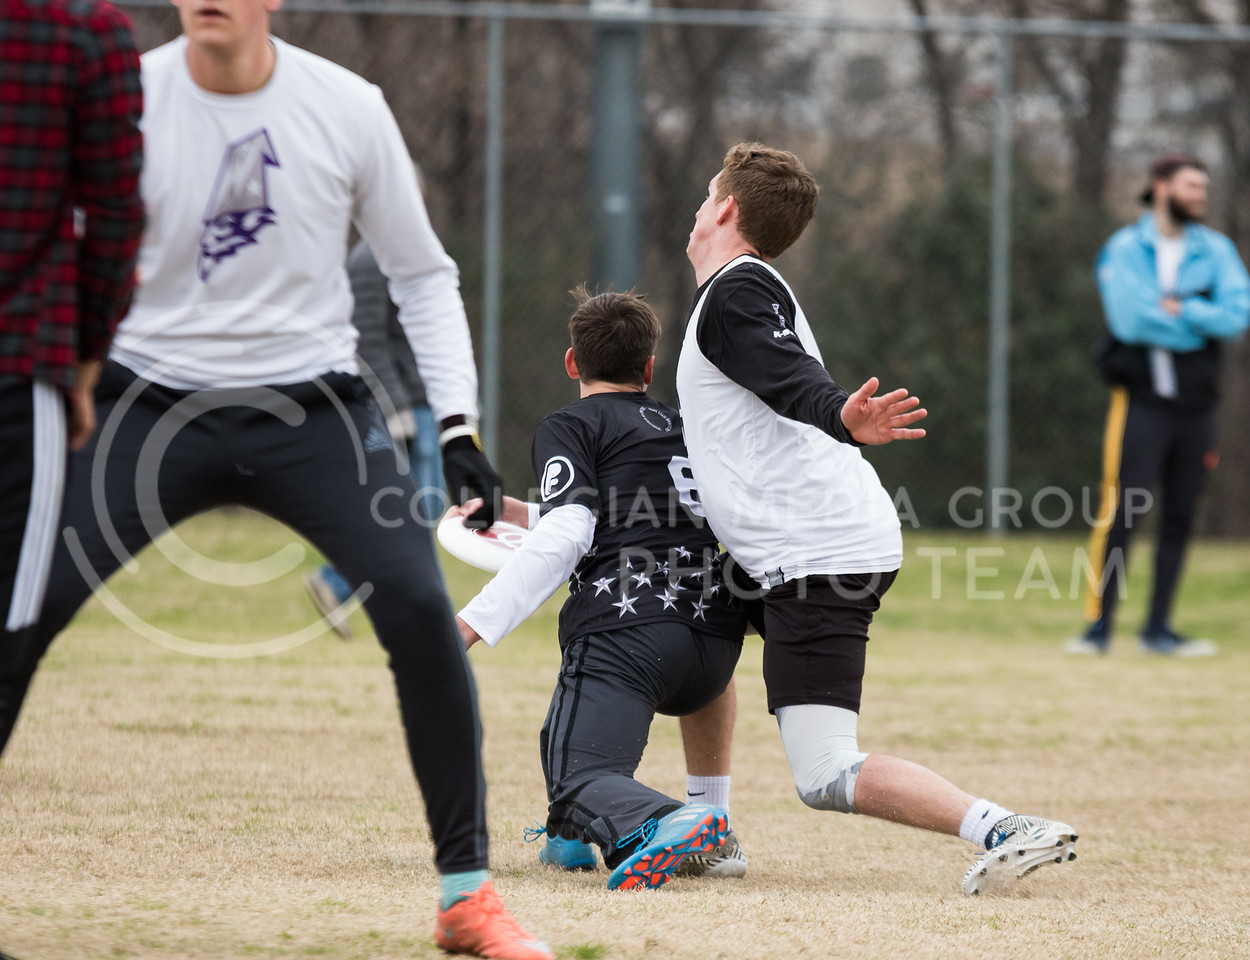 Freshman in Kinesiology, Samuel Nelson defends a thrower at the K-State Wizards' Ultimate Frisbee tournament in Denton, Texas on Feb. 4, 2017. (John Benfer | Royal Purple)